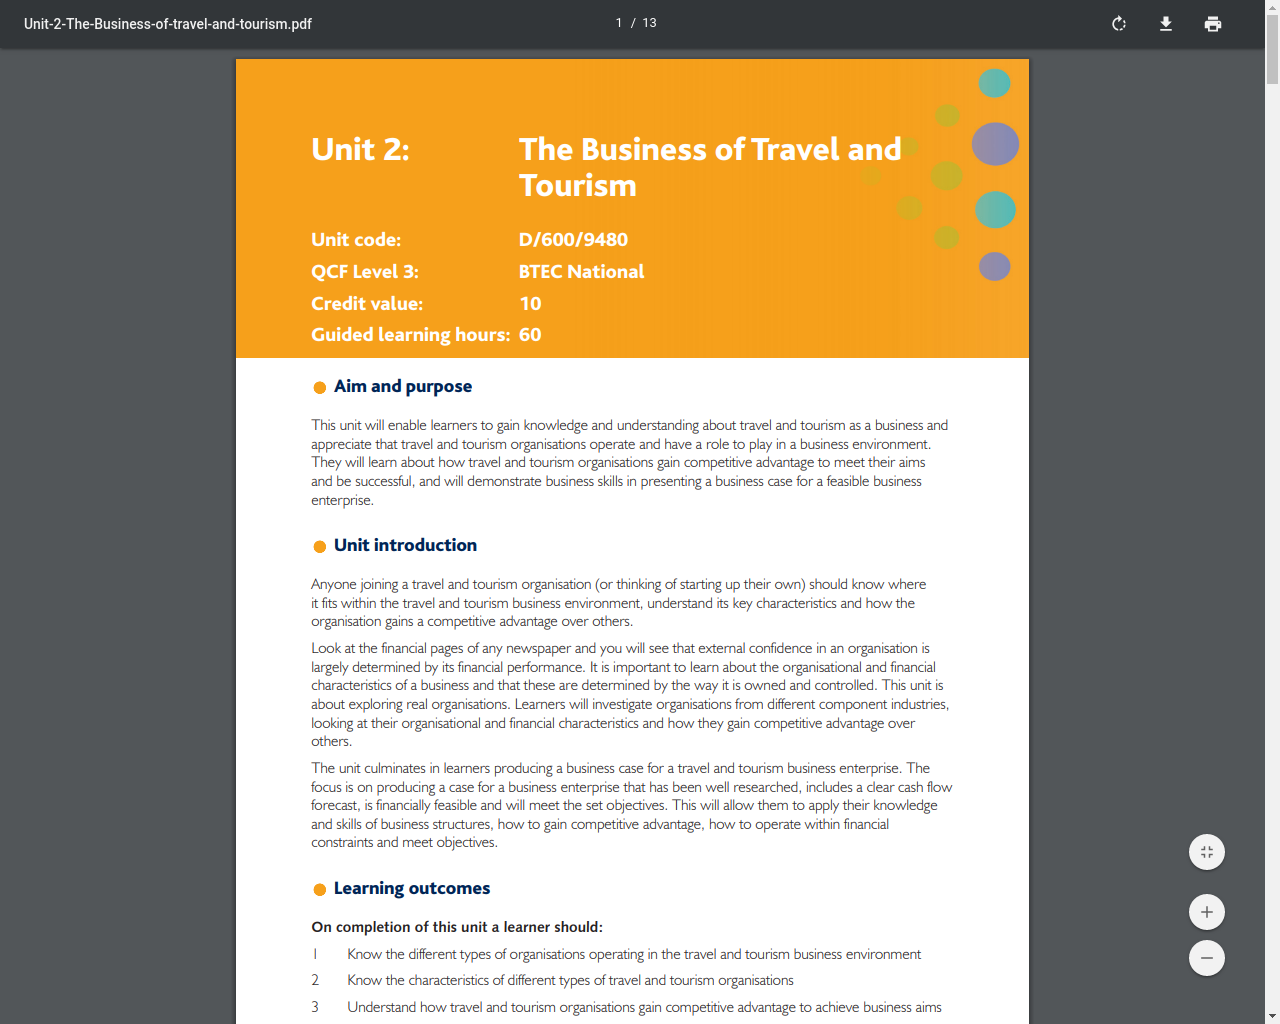 Unit 2 - The Business of Travel and Tourism